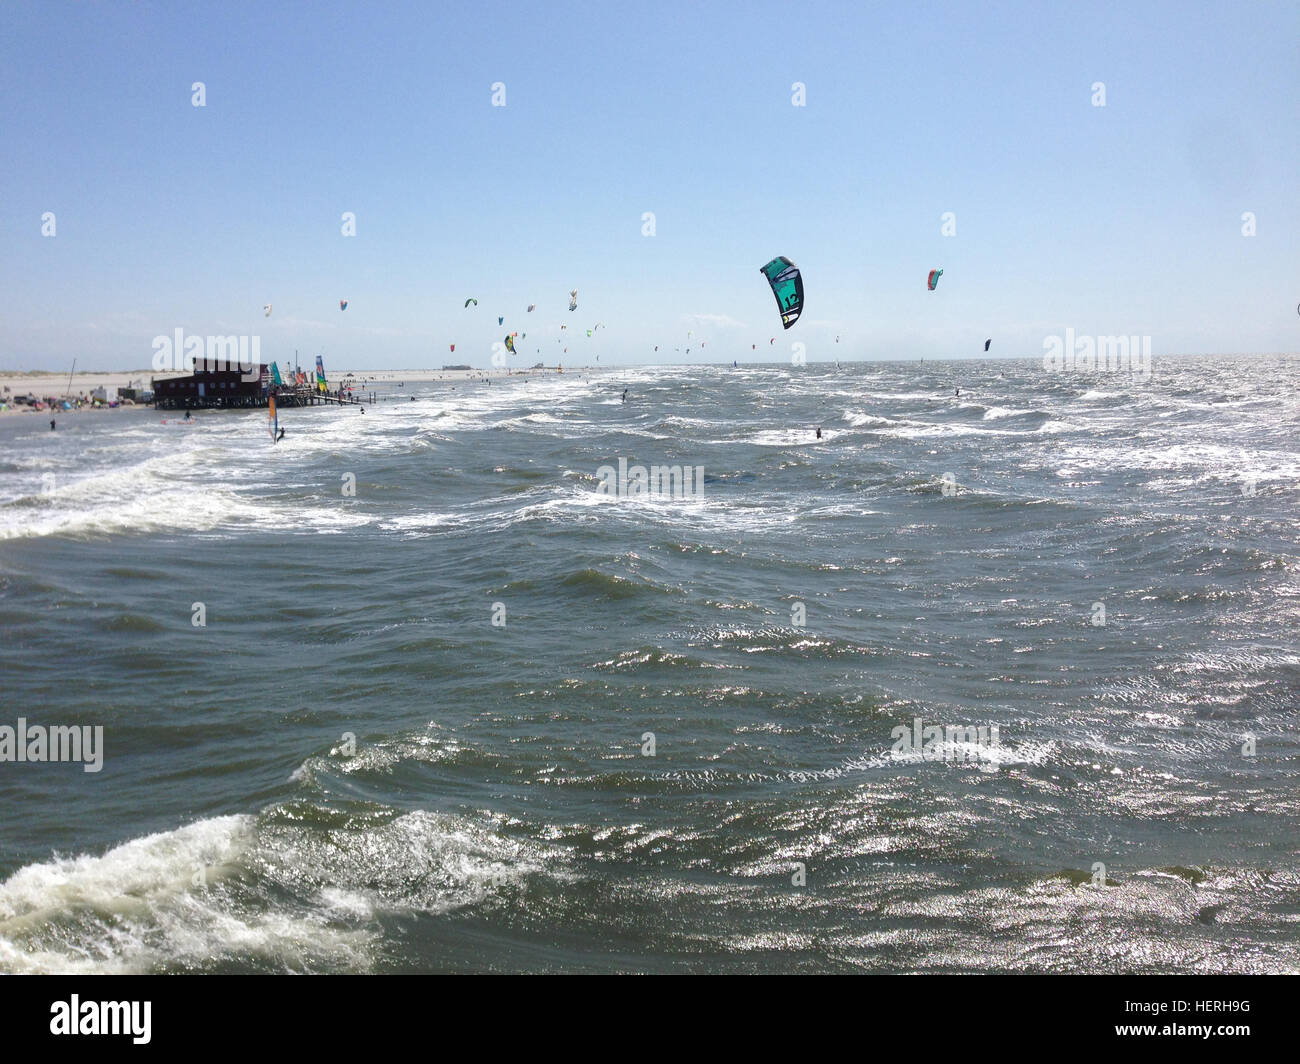 kite surfing is a famous sport in st peter ording germany stock photo 129596252 alamy. Black Bedroom Furniture Sets. Home Design Ideas